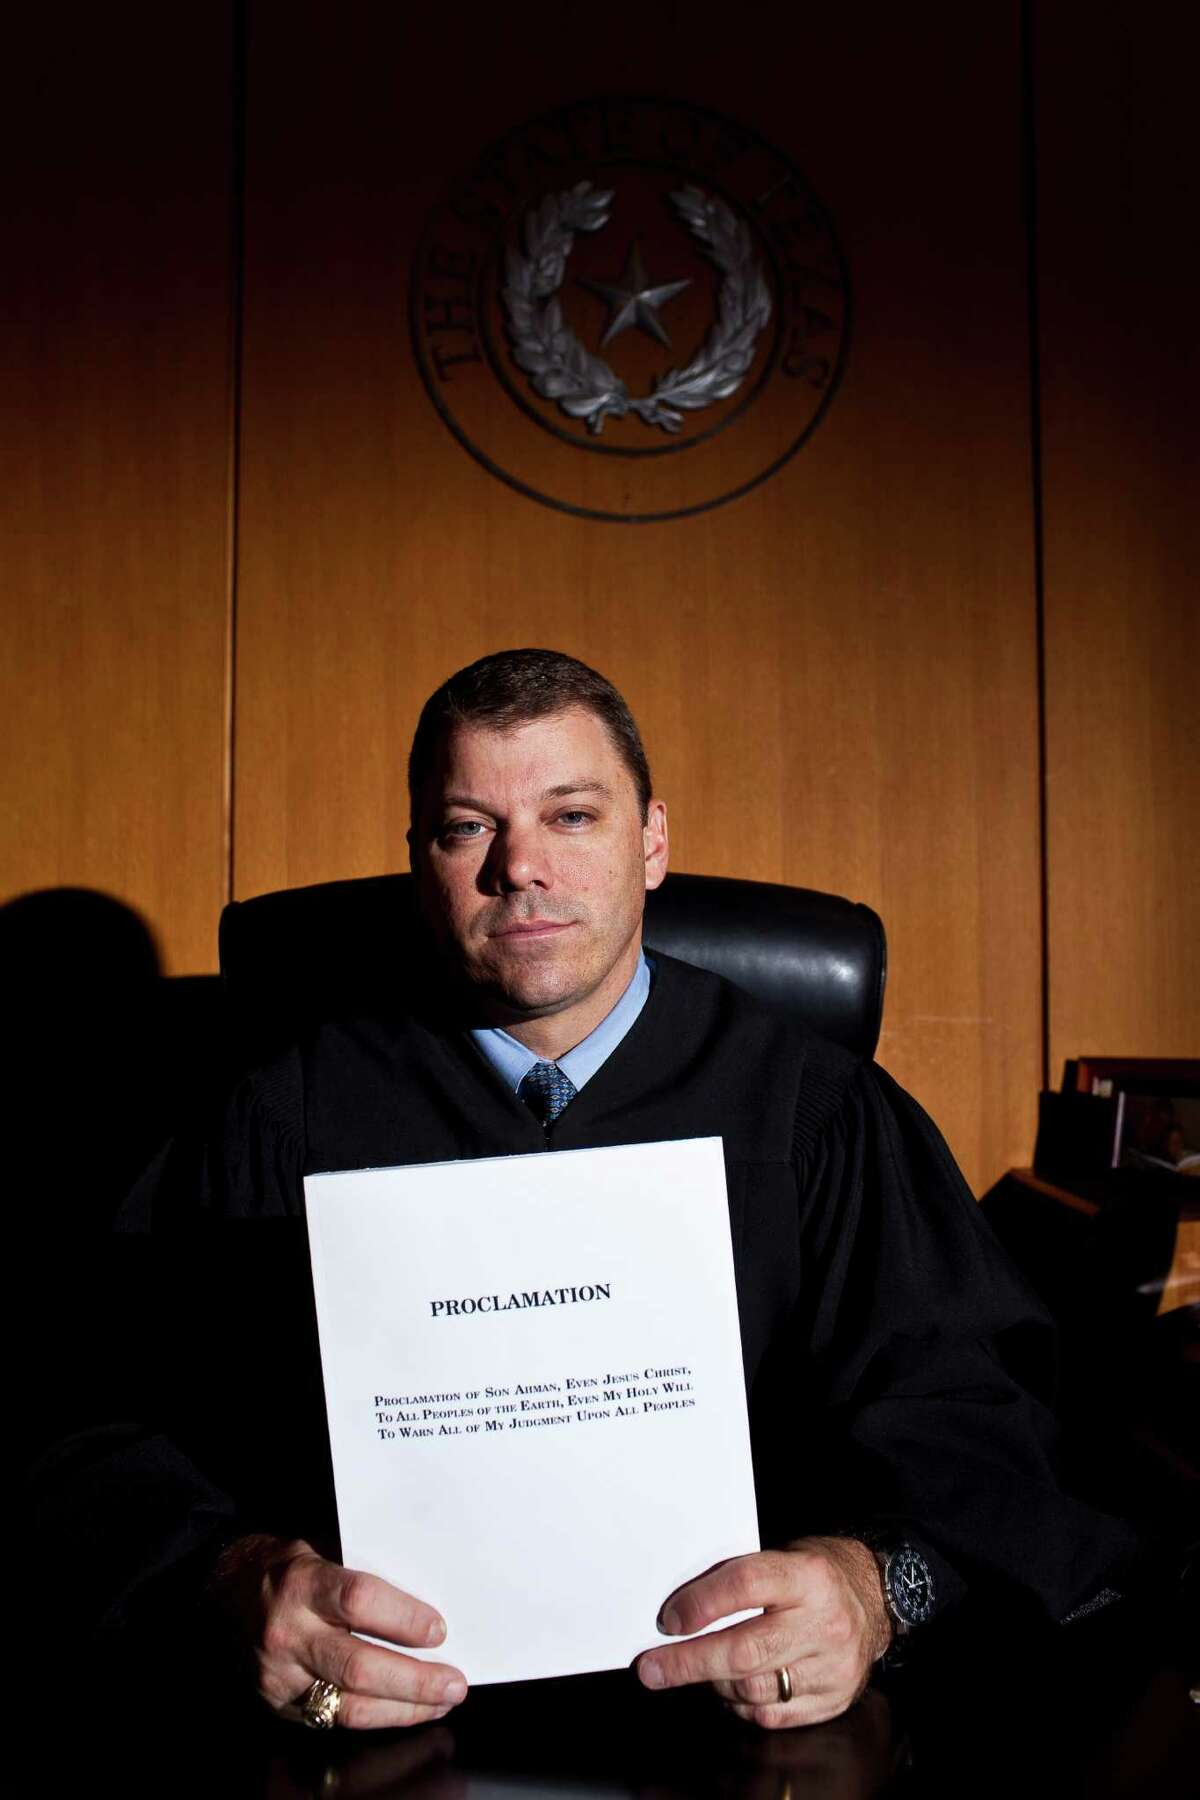 David Farr, chief judge of the family court, was one of several judges that received a book of prophecies in the mail. It was written by sect leader Warren Jeffs. Nov. 18, 2011. (Eric Kayne/For the Chronicle)